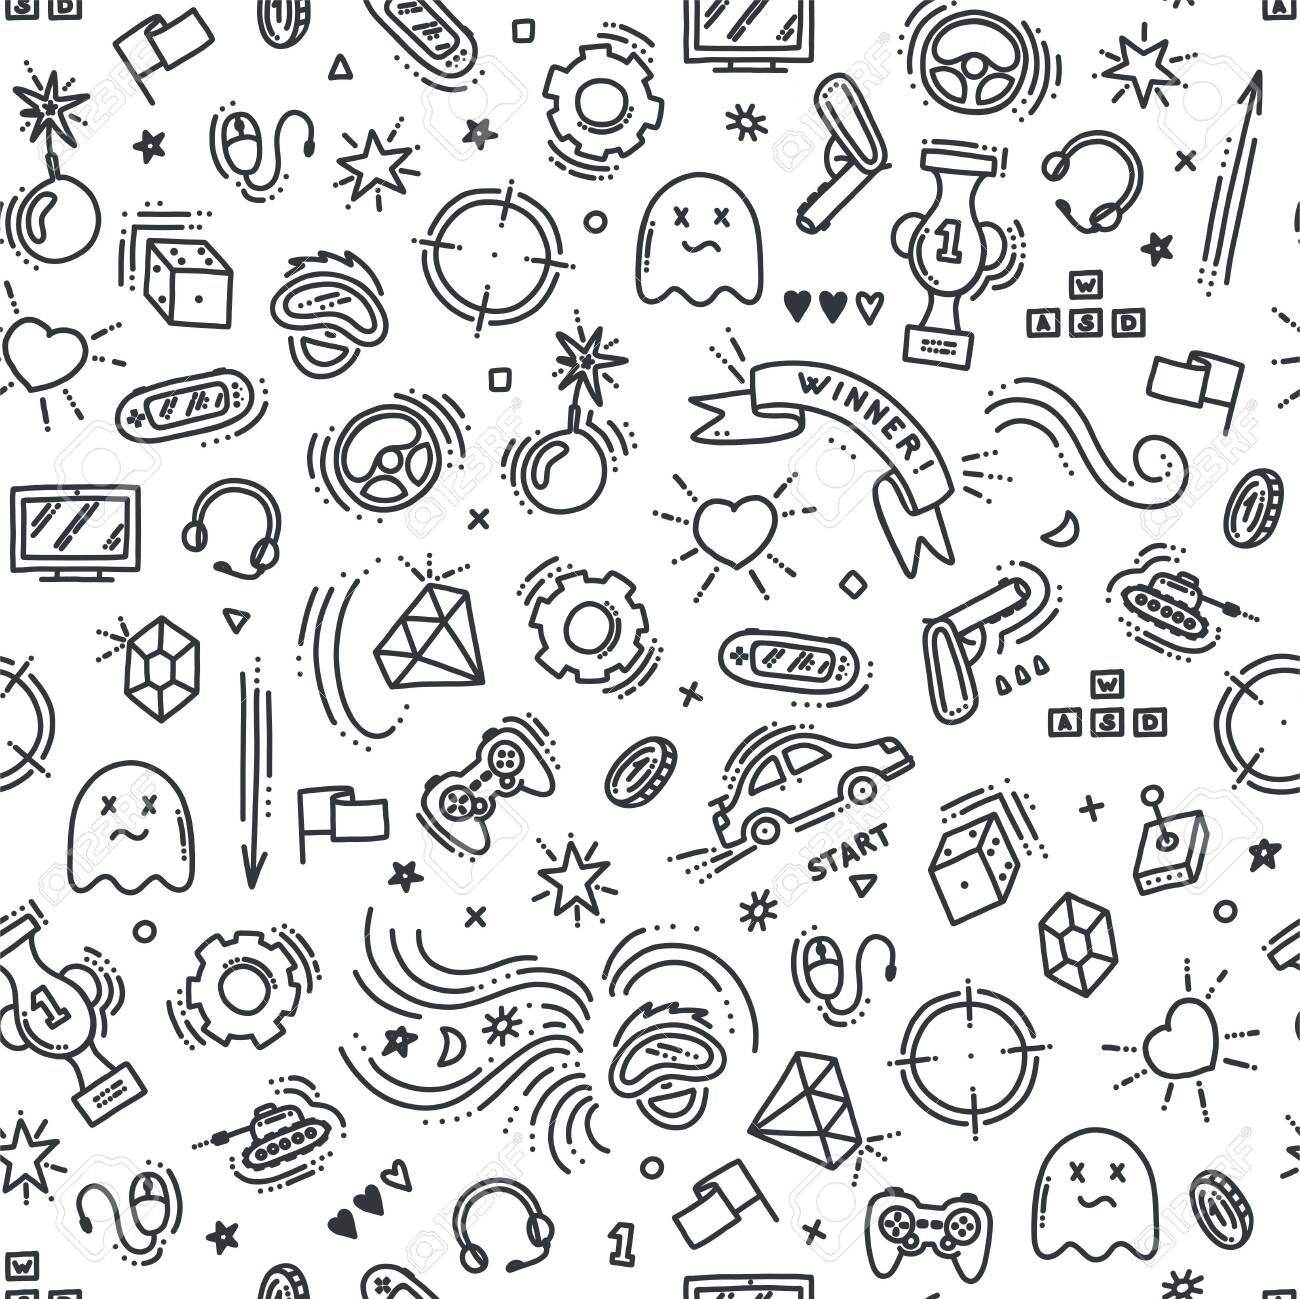 Seamless pattern of gaming objects. Virtual reality, computers, game genres and related stuff. Vector illustration in doodle style - 148946767